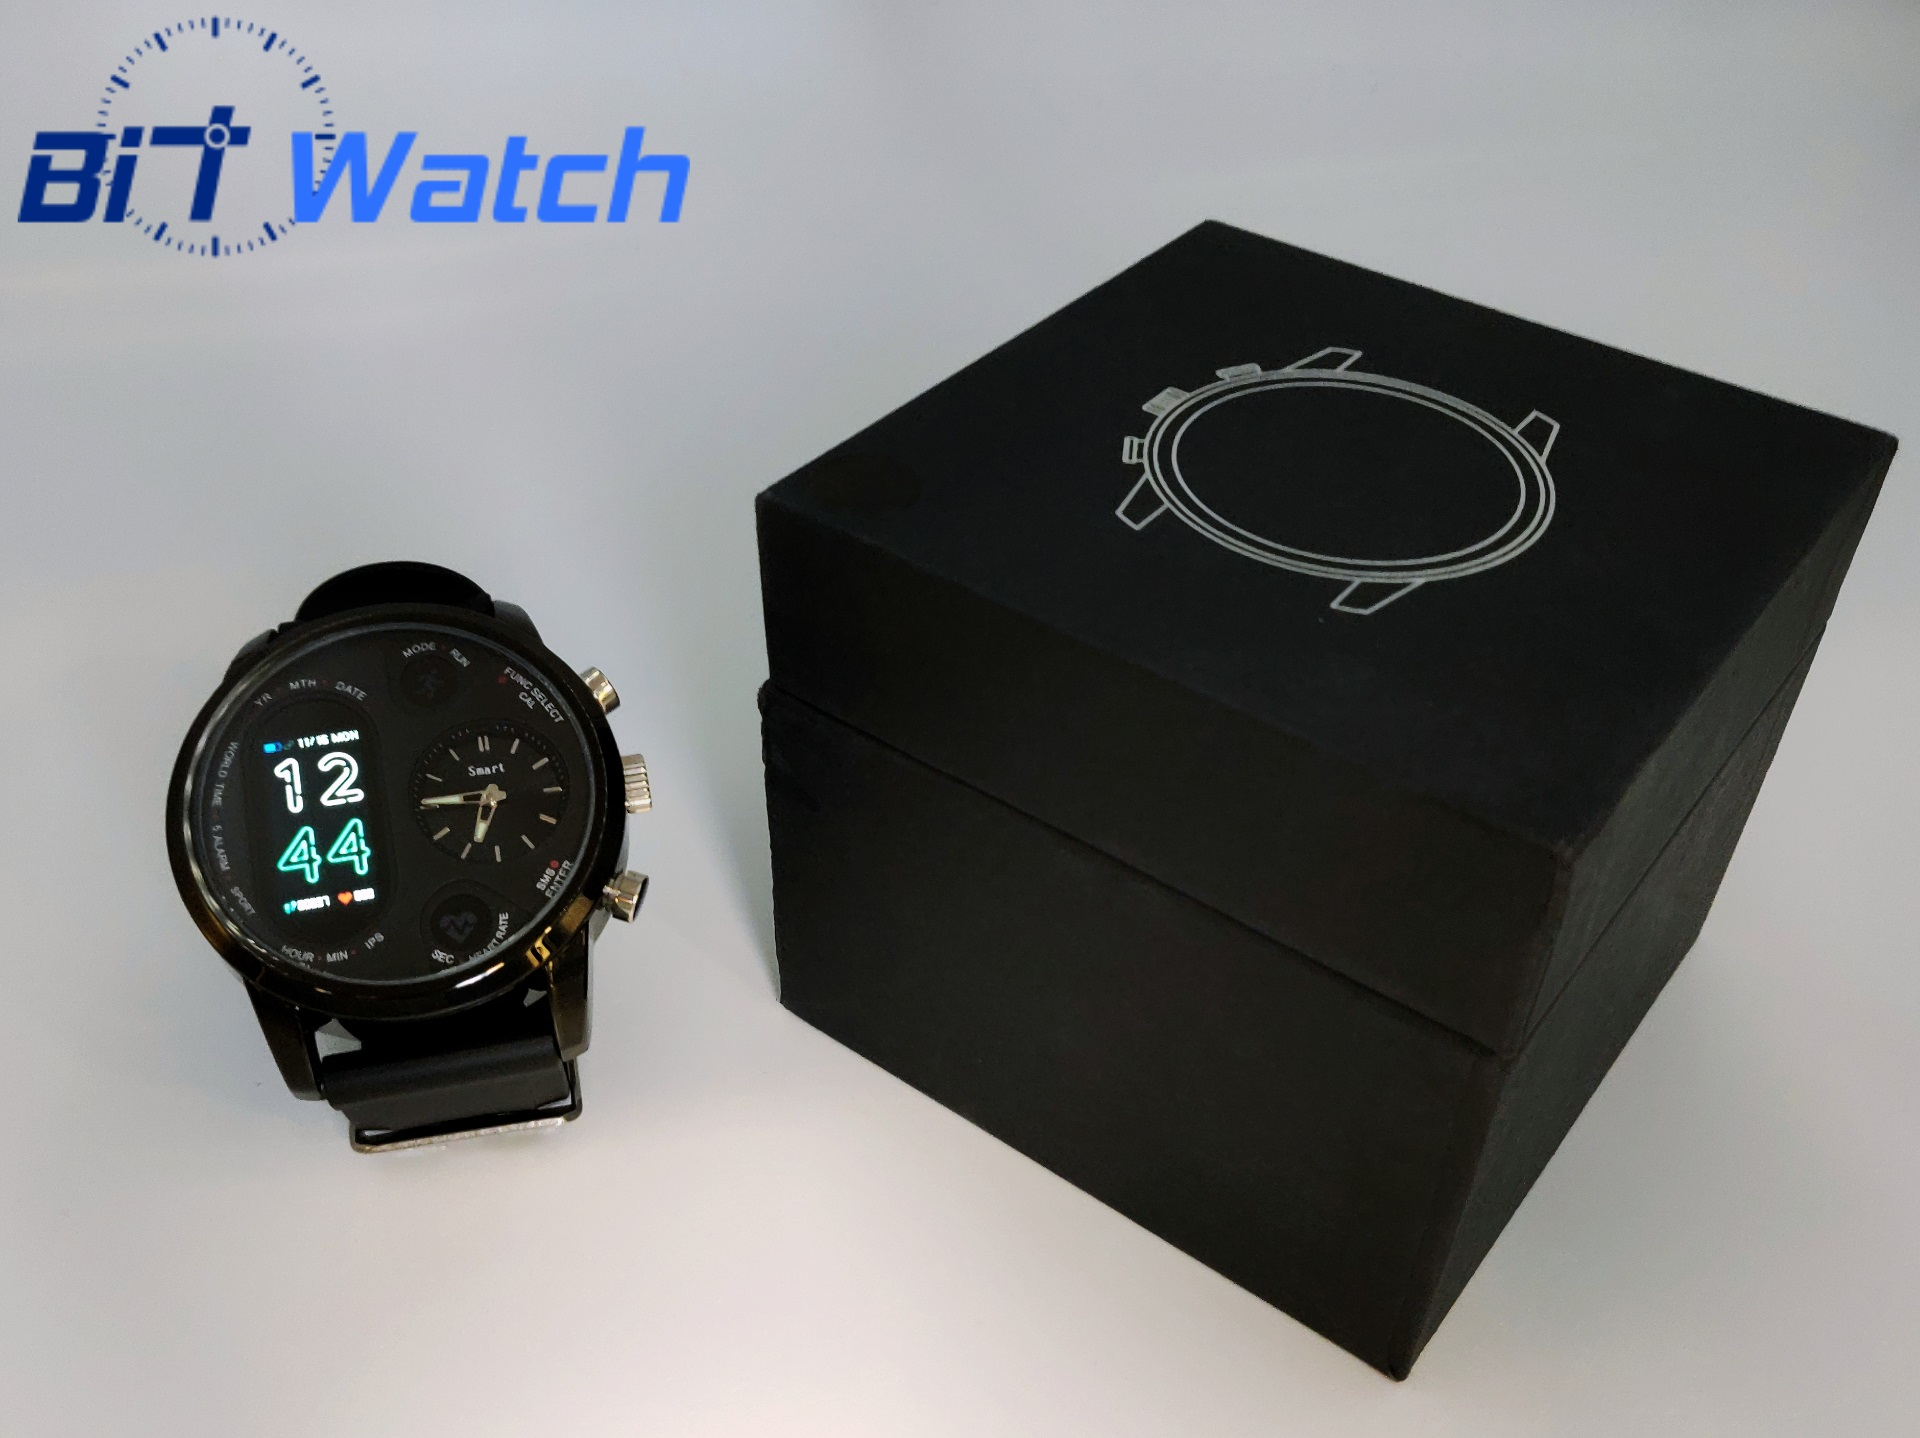 Where Can I Purchase the Bit Watch?